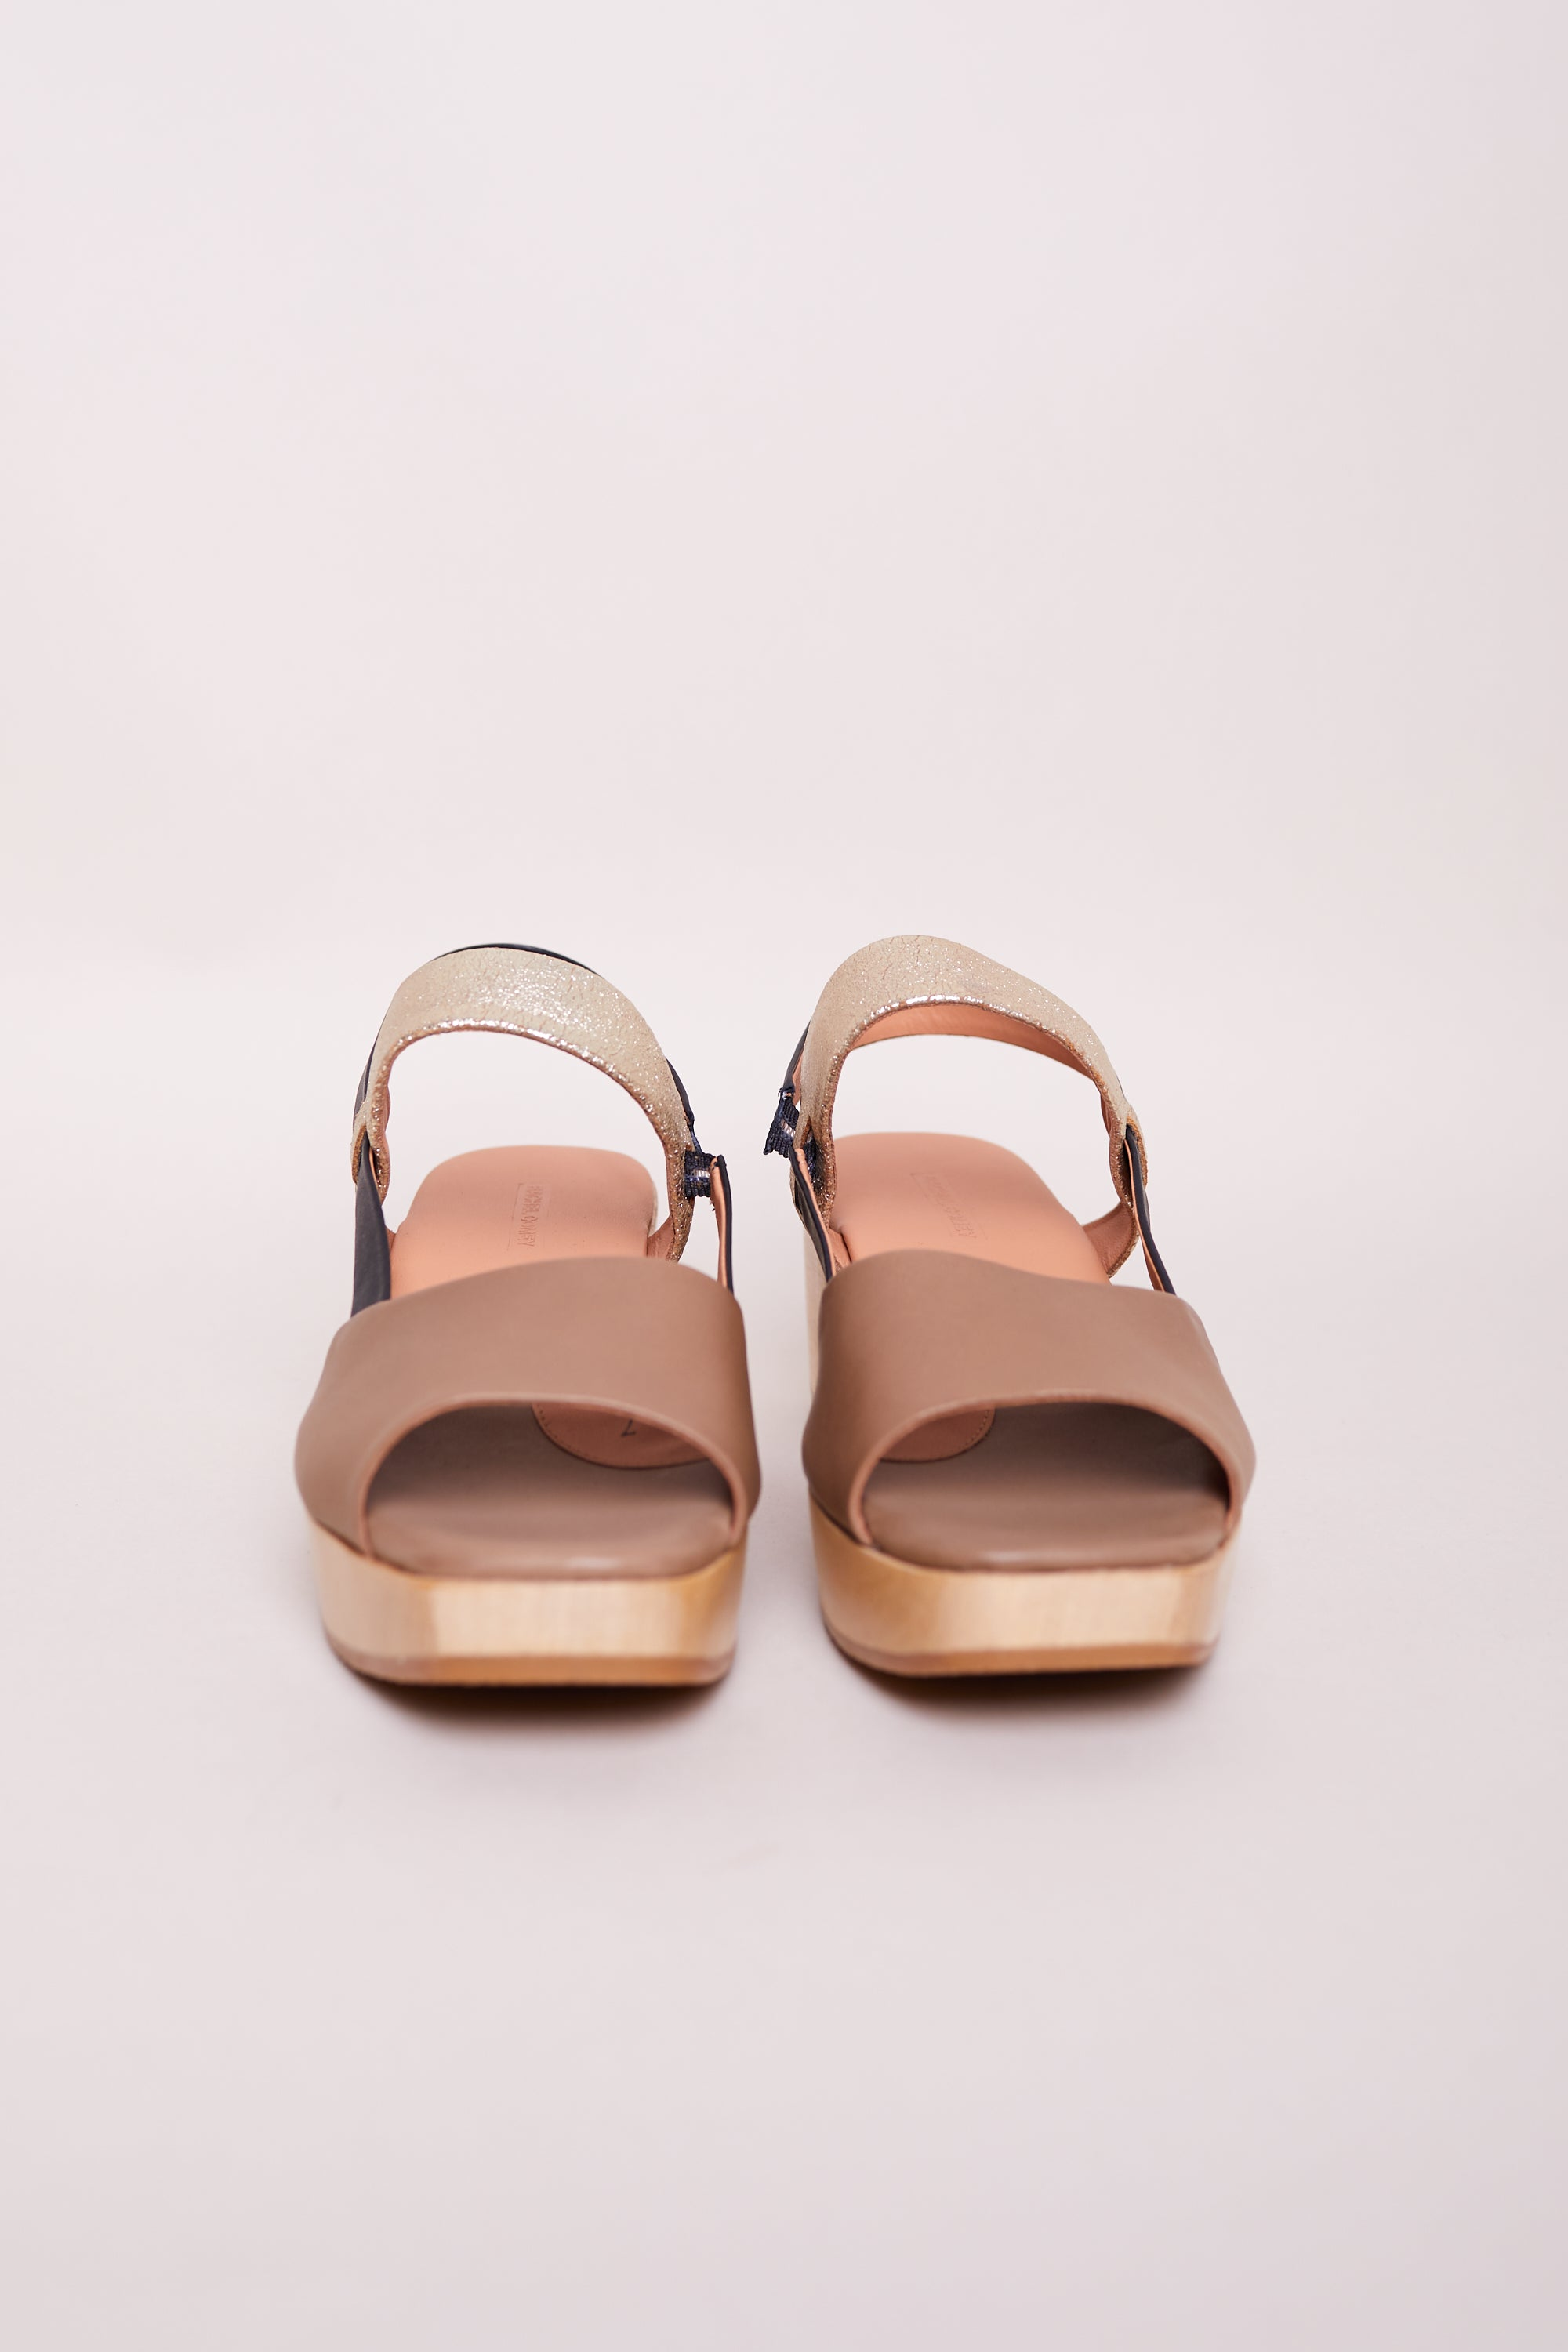 Rachel Comey New Kinta in Taupe - Vert & Vogue